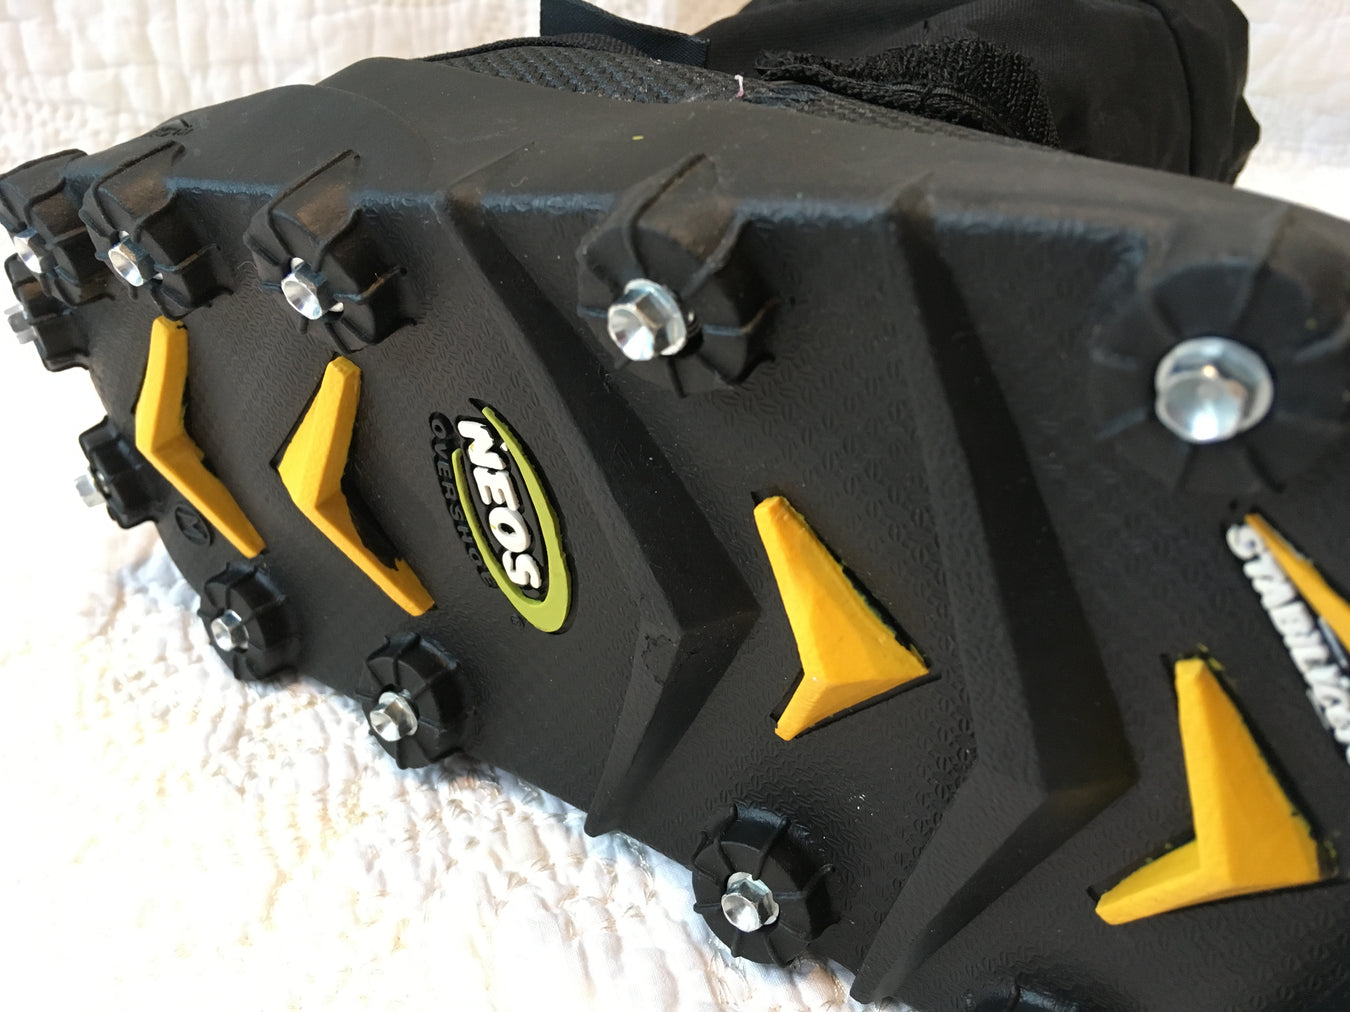 ICEGRIPPER BOOTS - not just any old snow boot